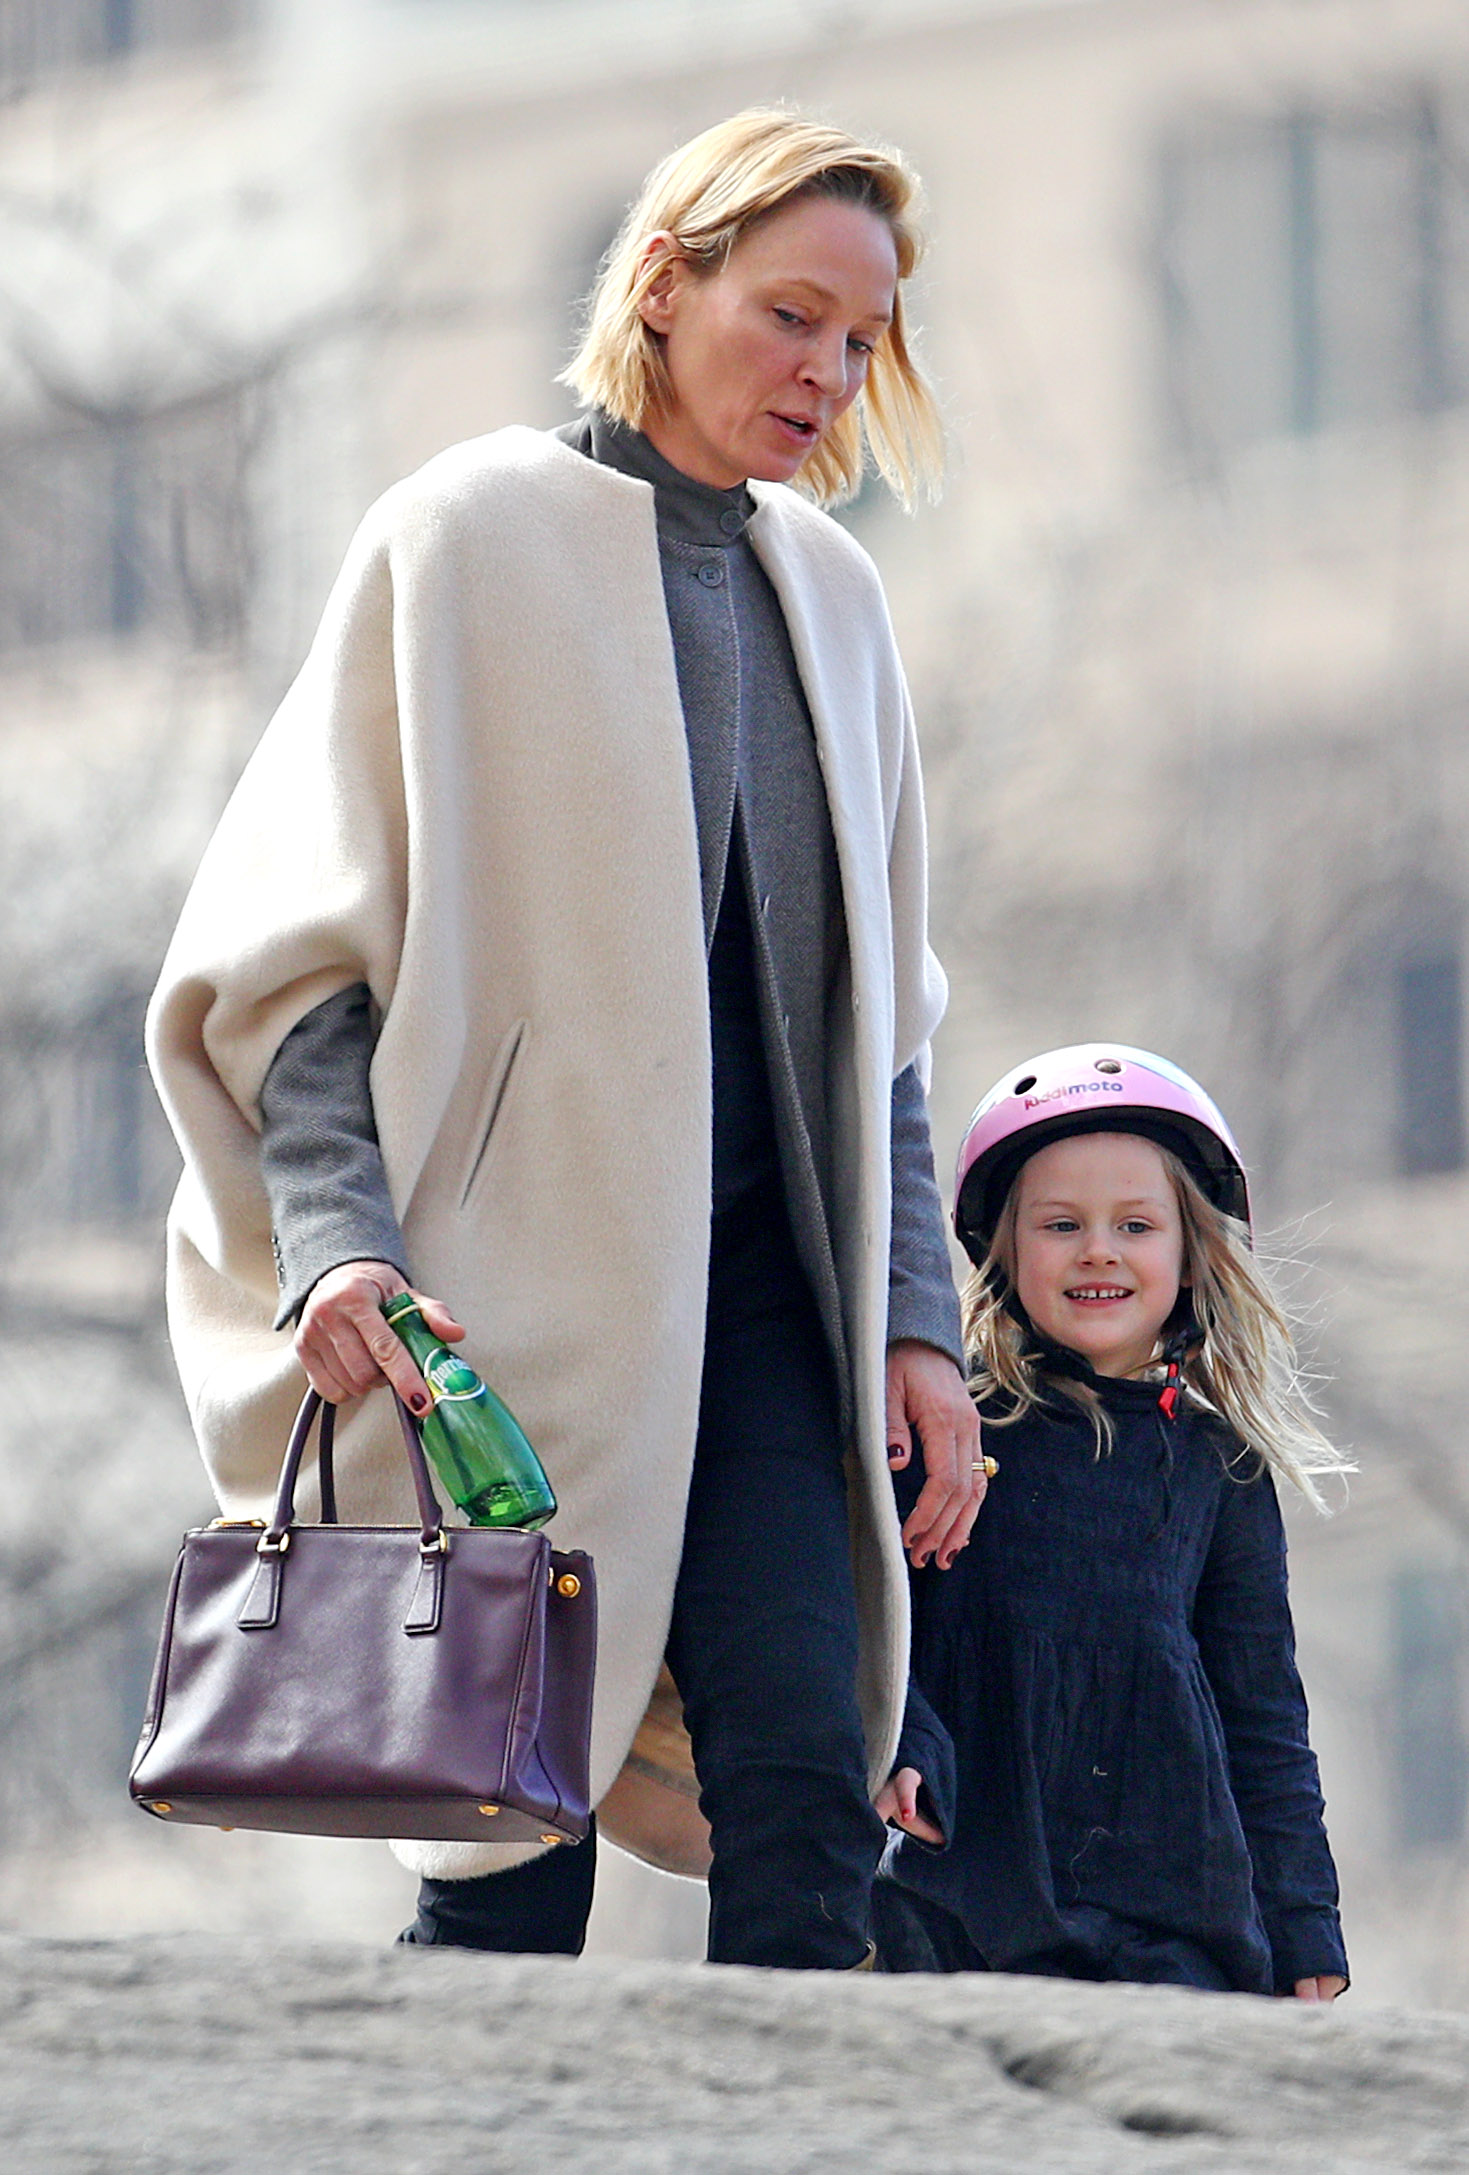 EXCLUSIVE Uma Thurman Spends Some Time Exploring Central Park With Her Daughter Luna